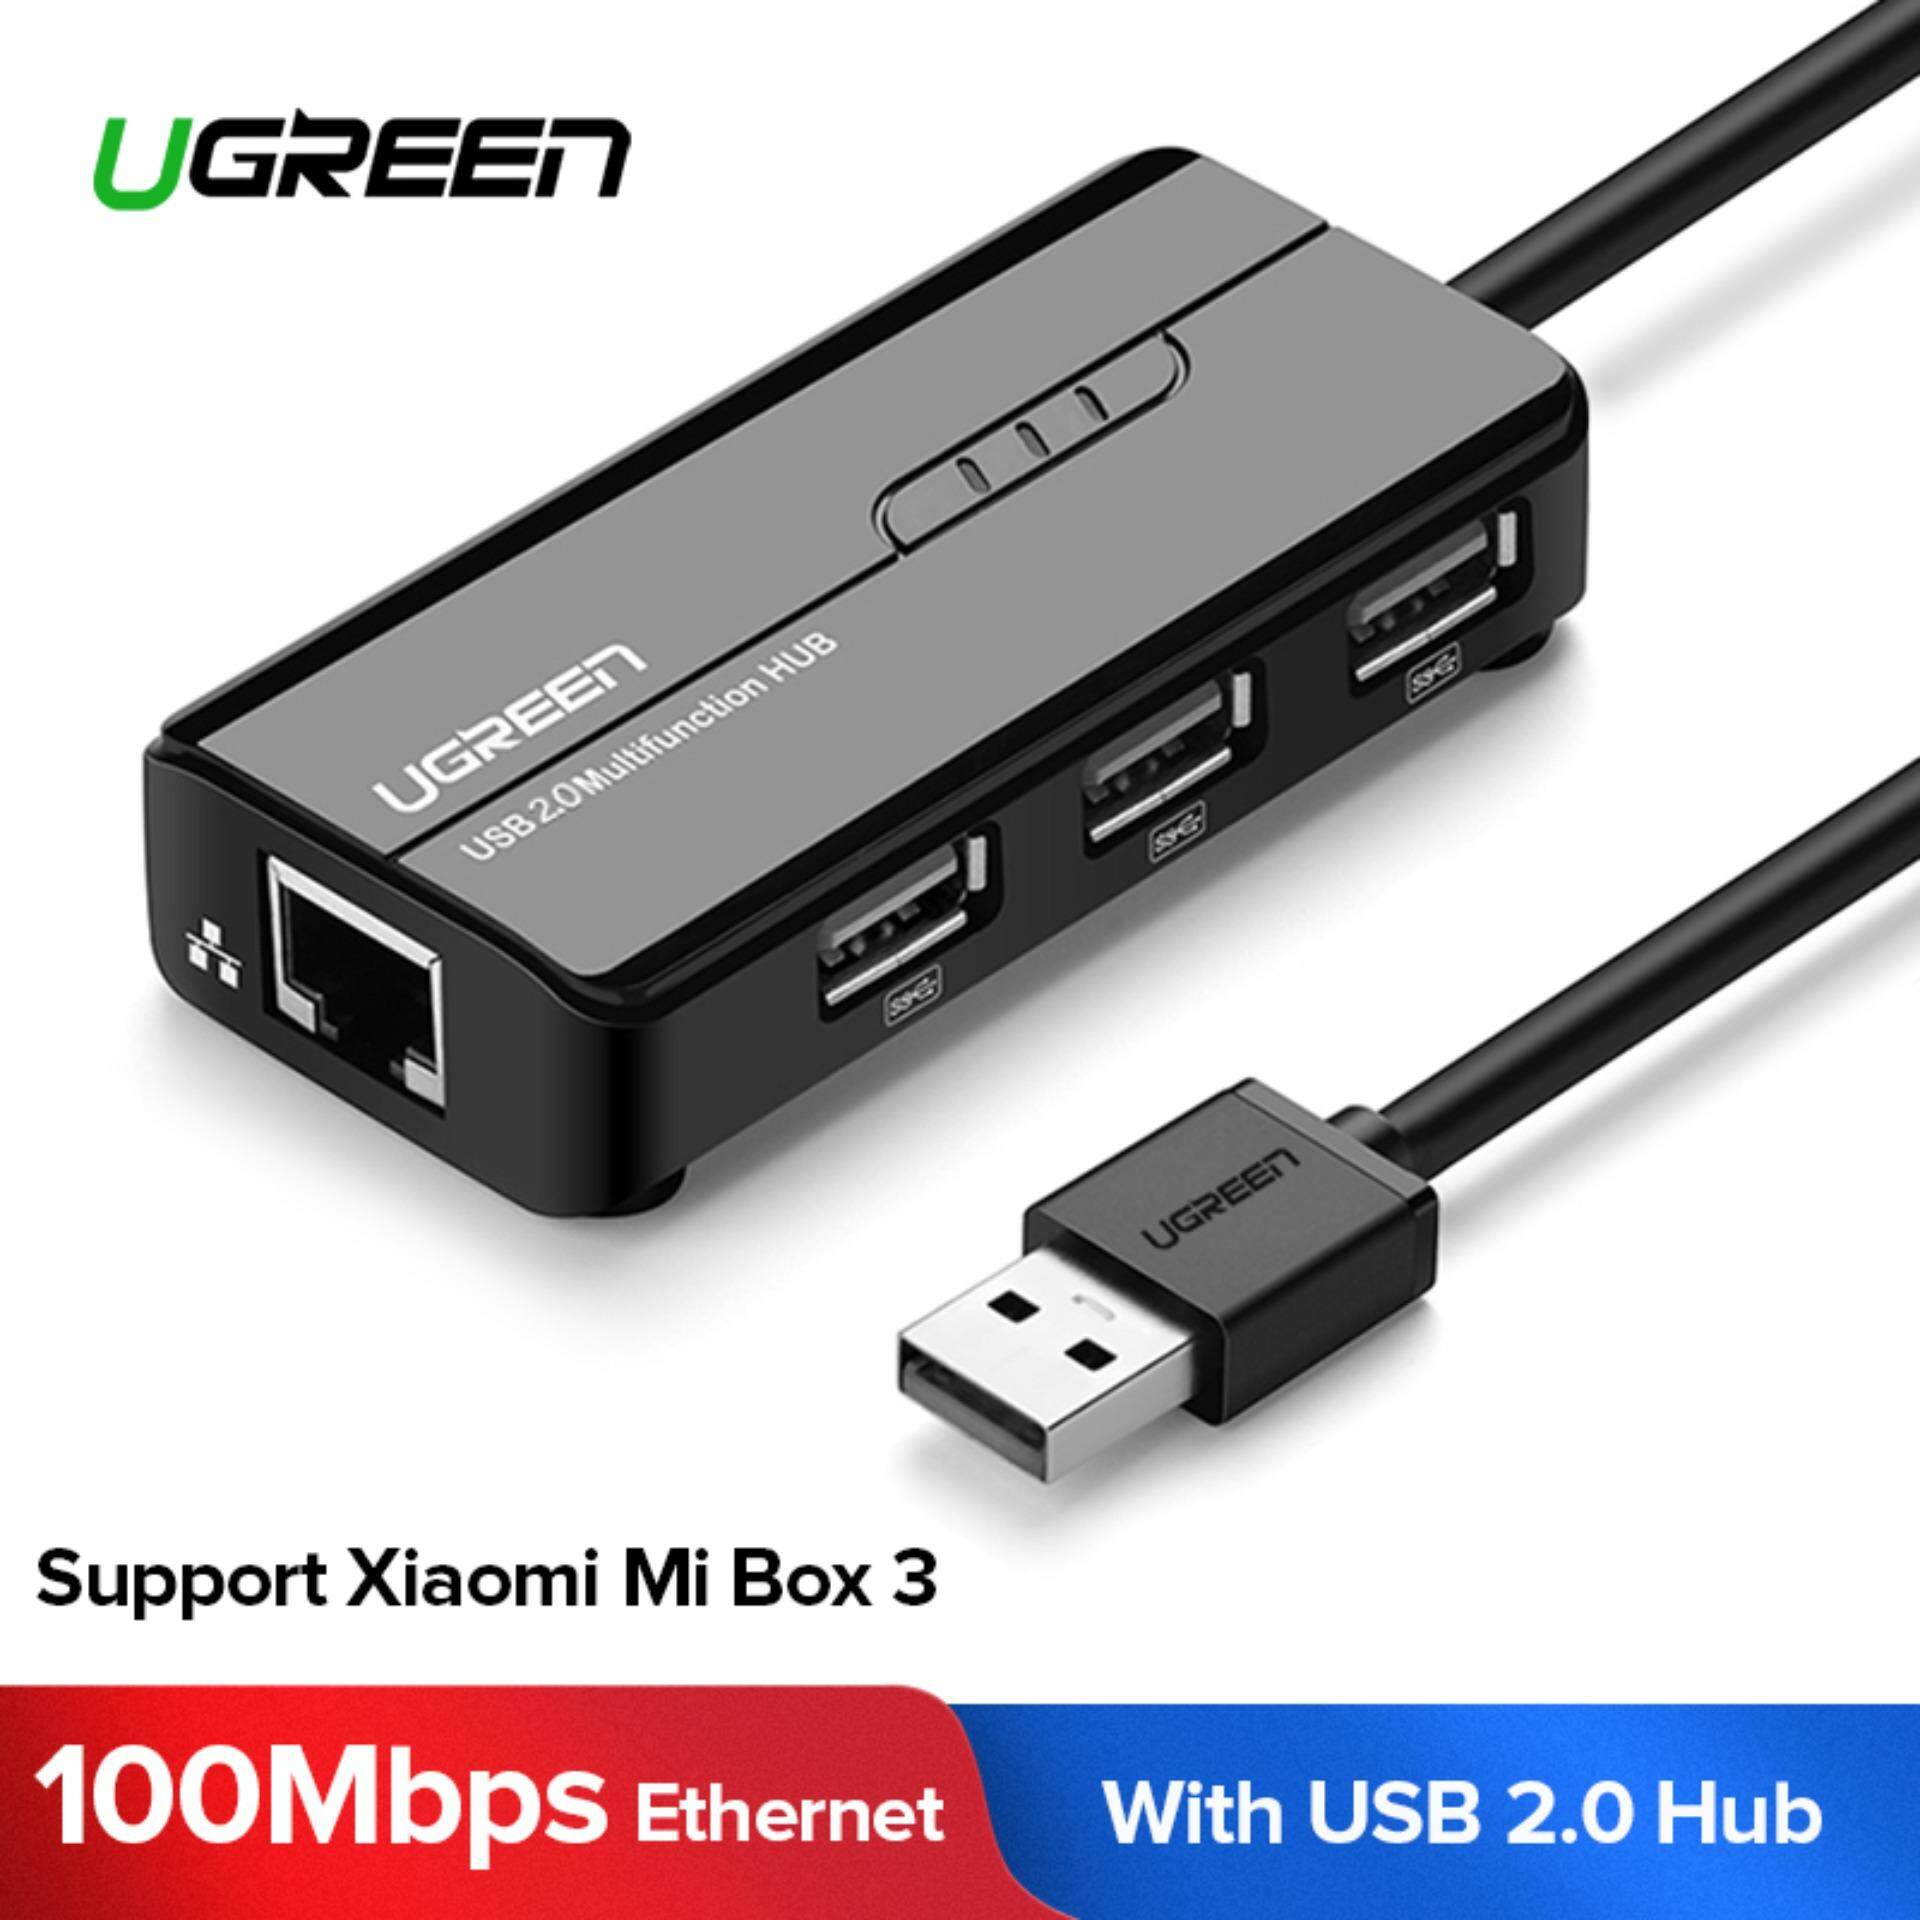 Ugreen Rj45 Ethernet Adapter With Usb 2.0 Hub Usb Network Adapter 10/100mbps For Nintendo Switch, Wii, Windows Surface Pro, Macbook Air/retina, Chromebook, And More Pc By Ugreen Flagship Store.